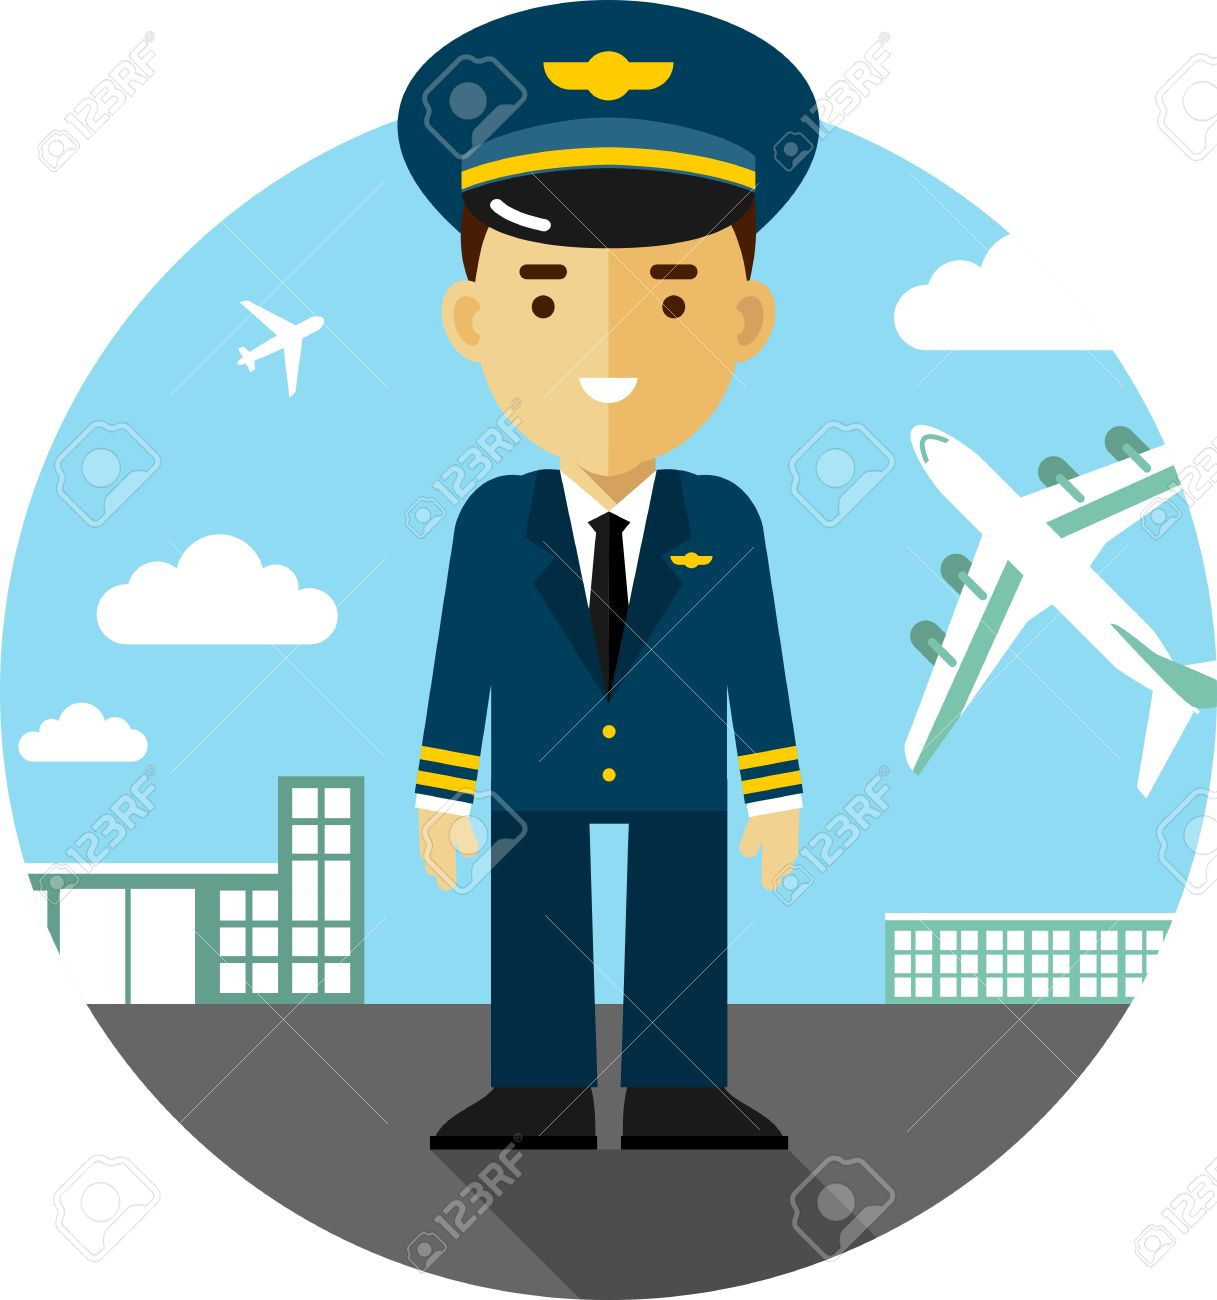 Pilot on station. Airport clipart background